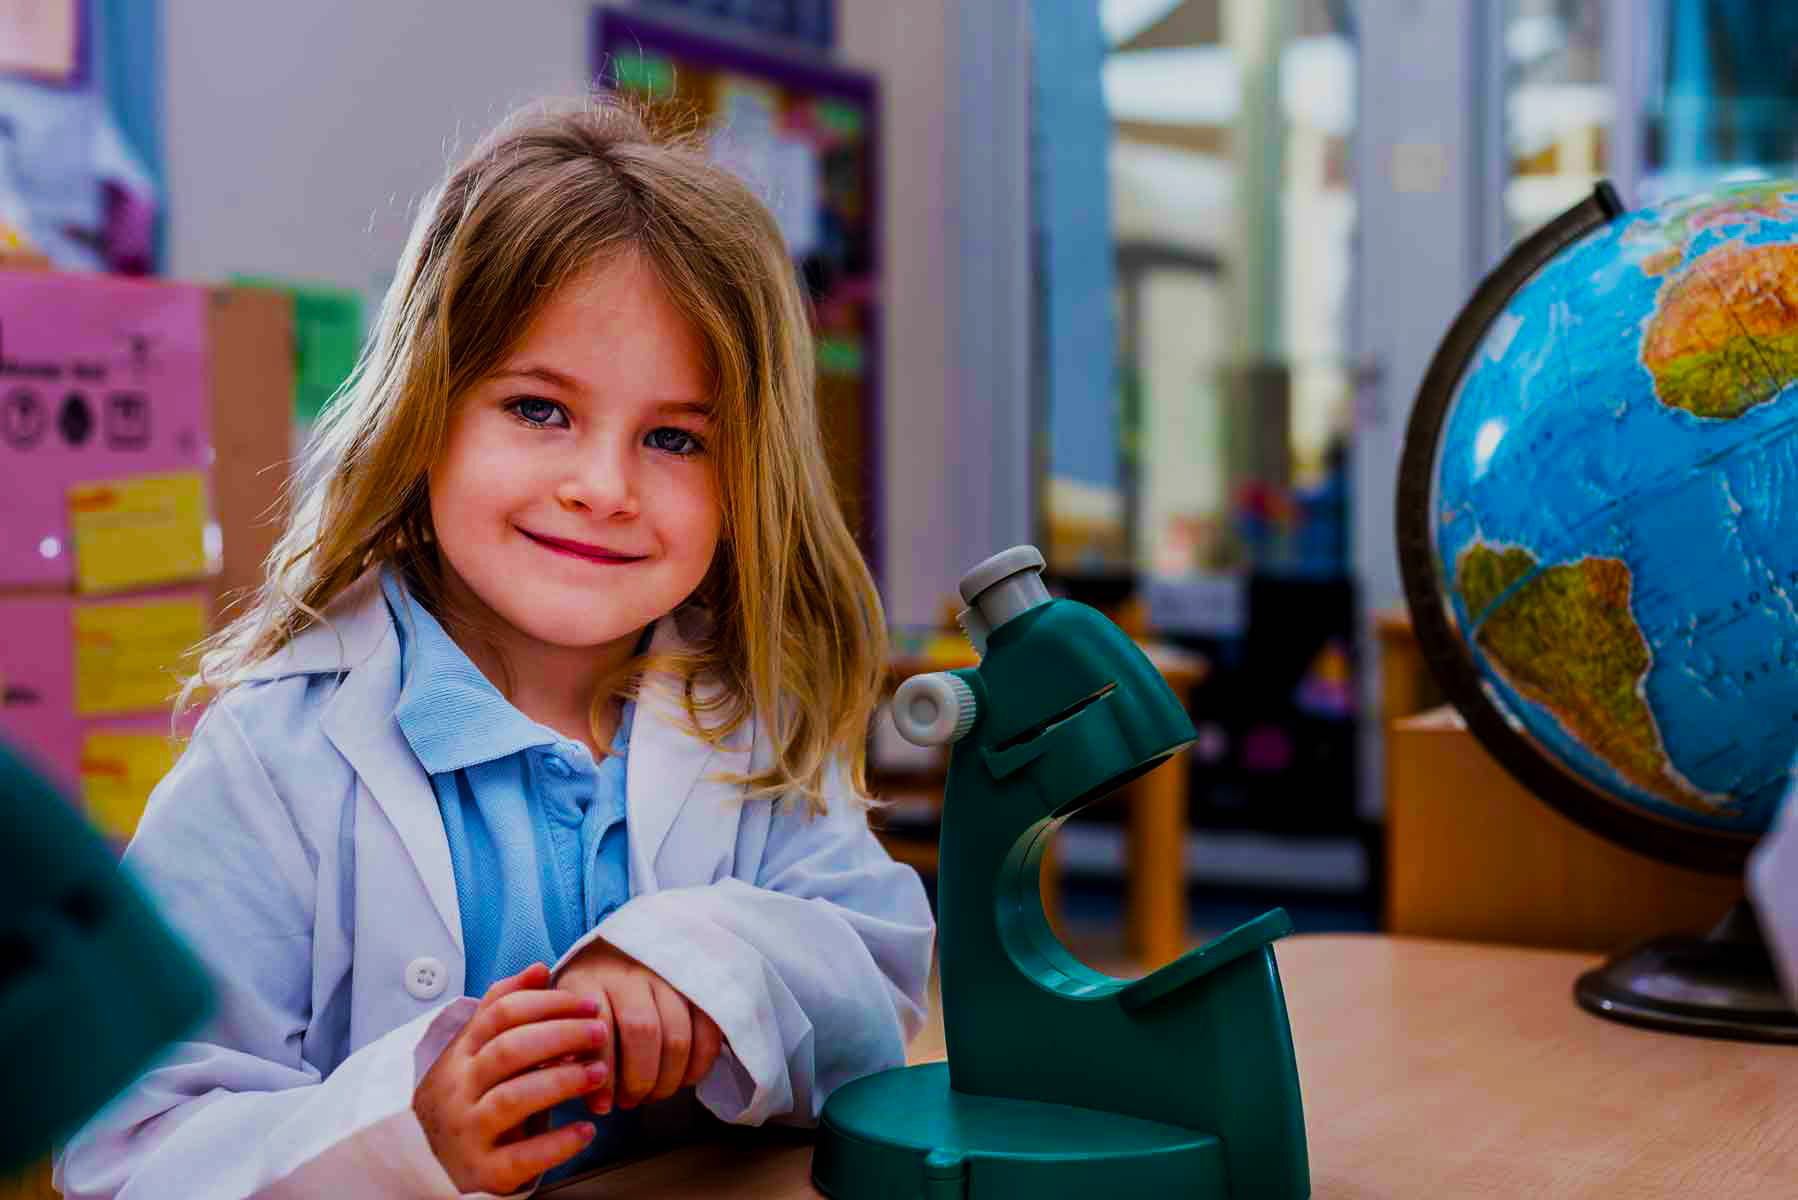 Photograph of young girl at Uptown School in the labs with a microscope looking happy and inspired